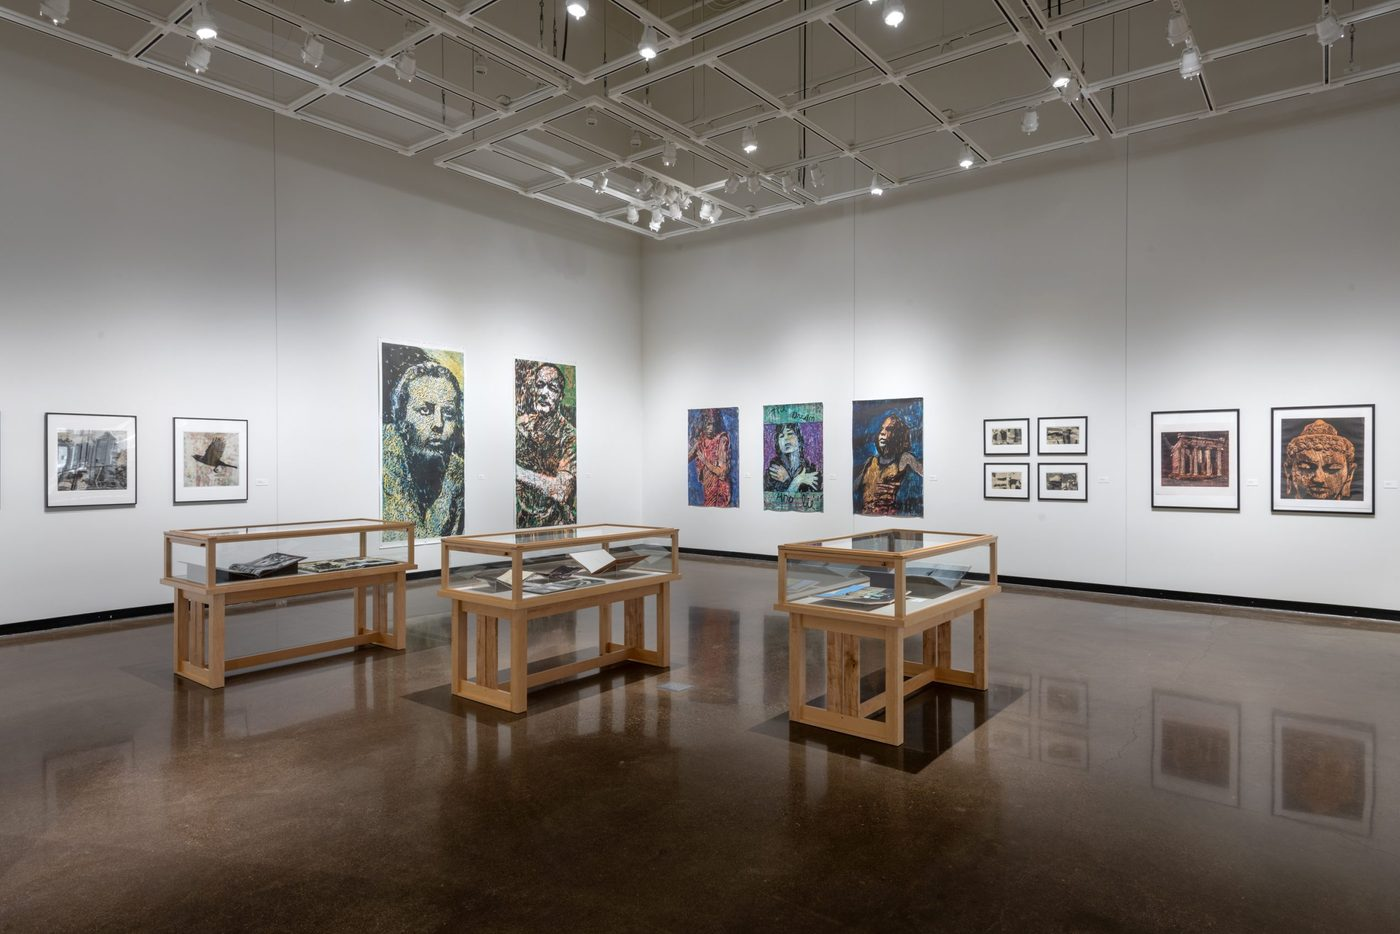 Chronologia exhibition in the Braucher Gallery